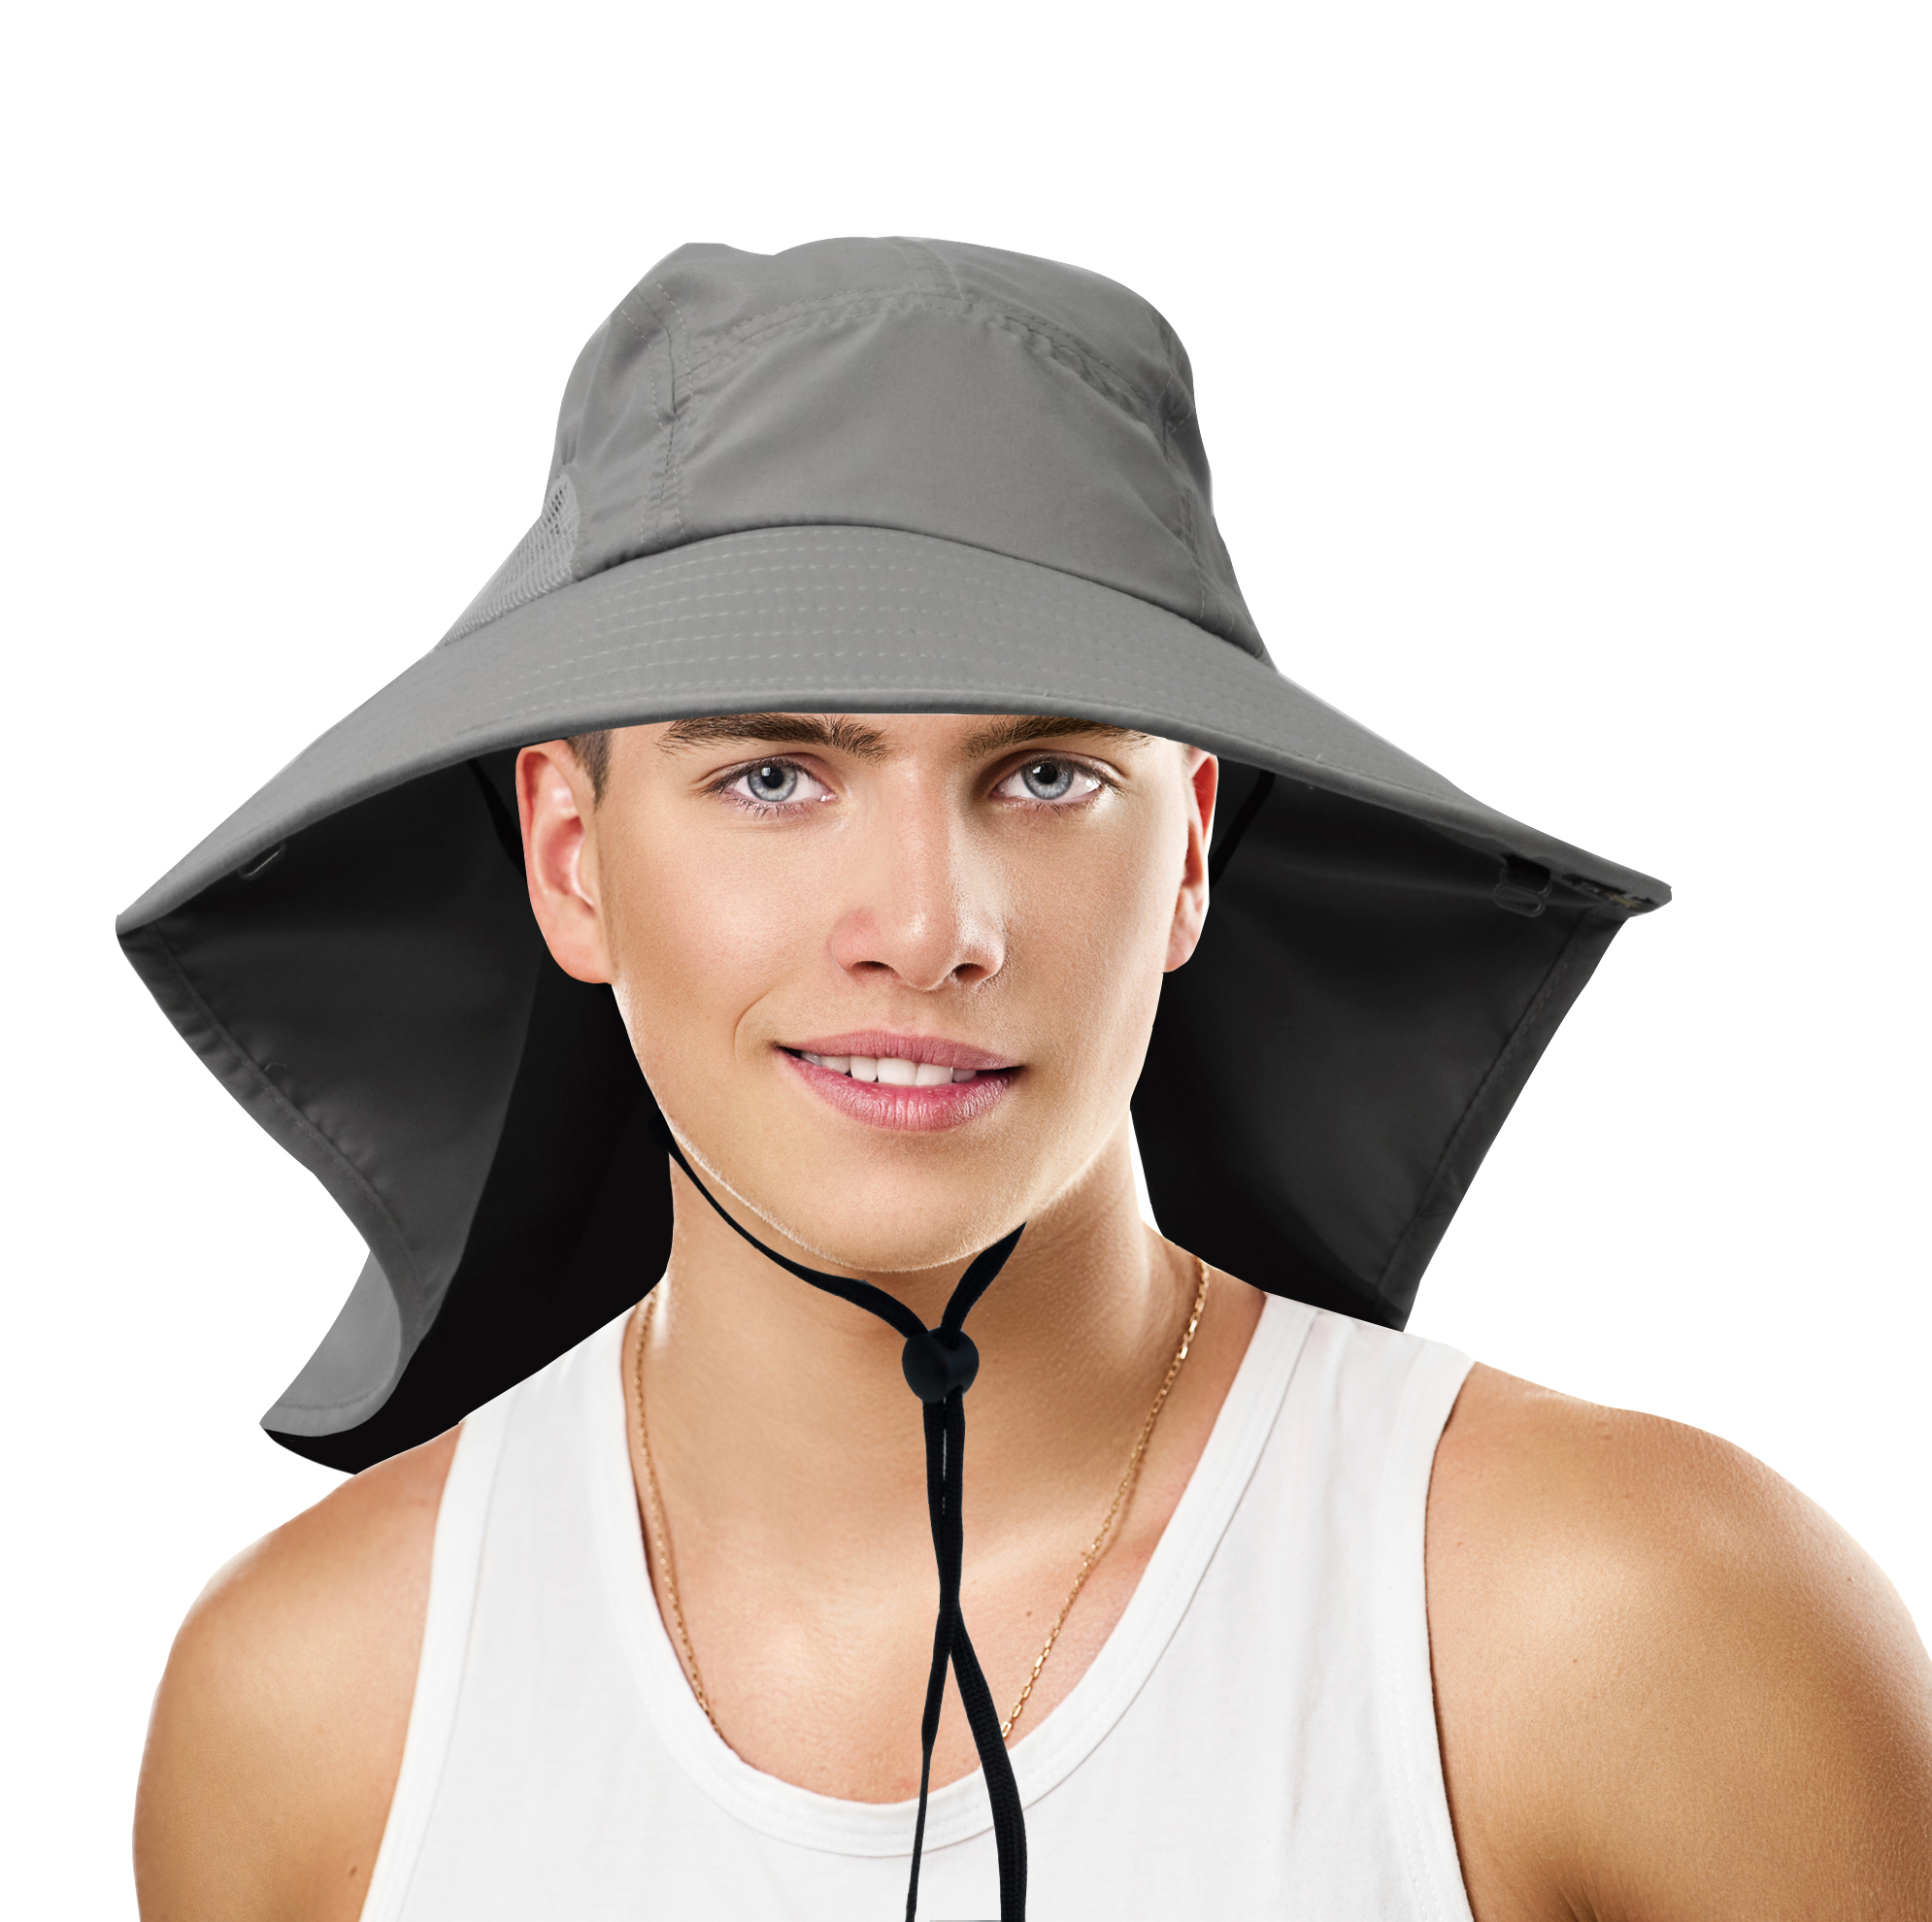 Safari Outdoor Sun Hat for Fishing Hiking Hunting Boating Large Unisex Bill Sun Hat with Neck Flap by Sun Blocker